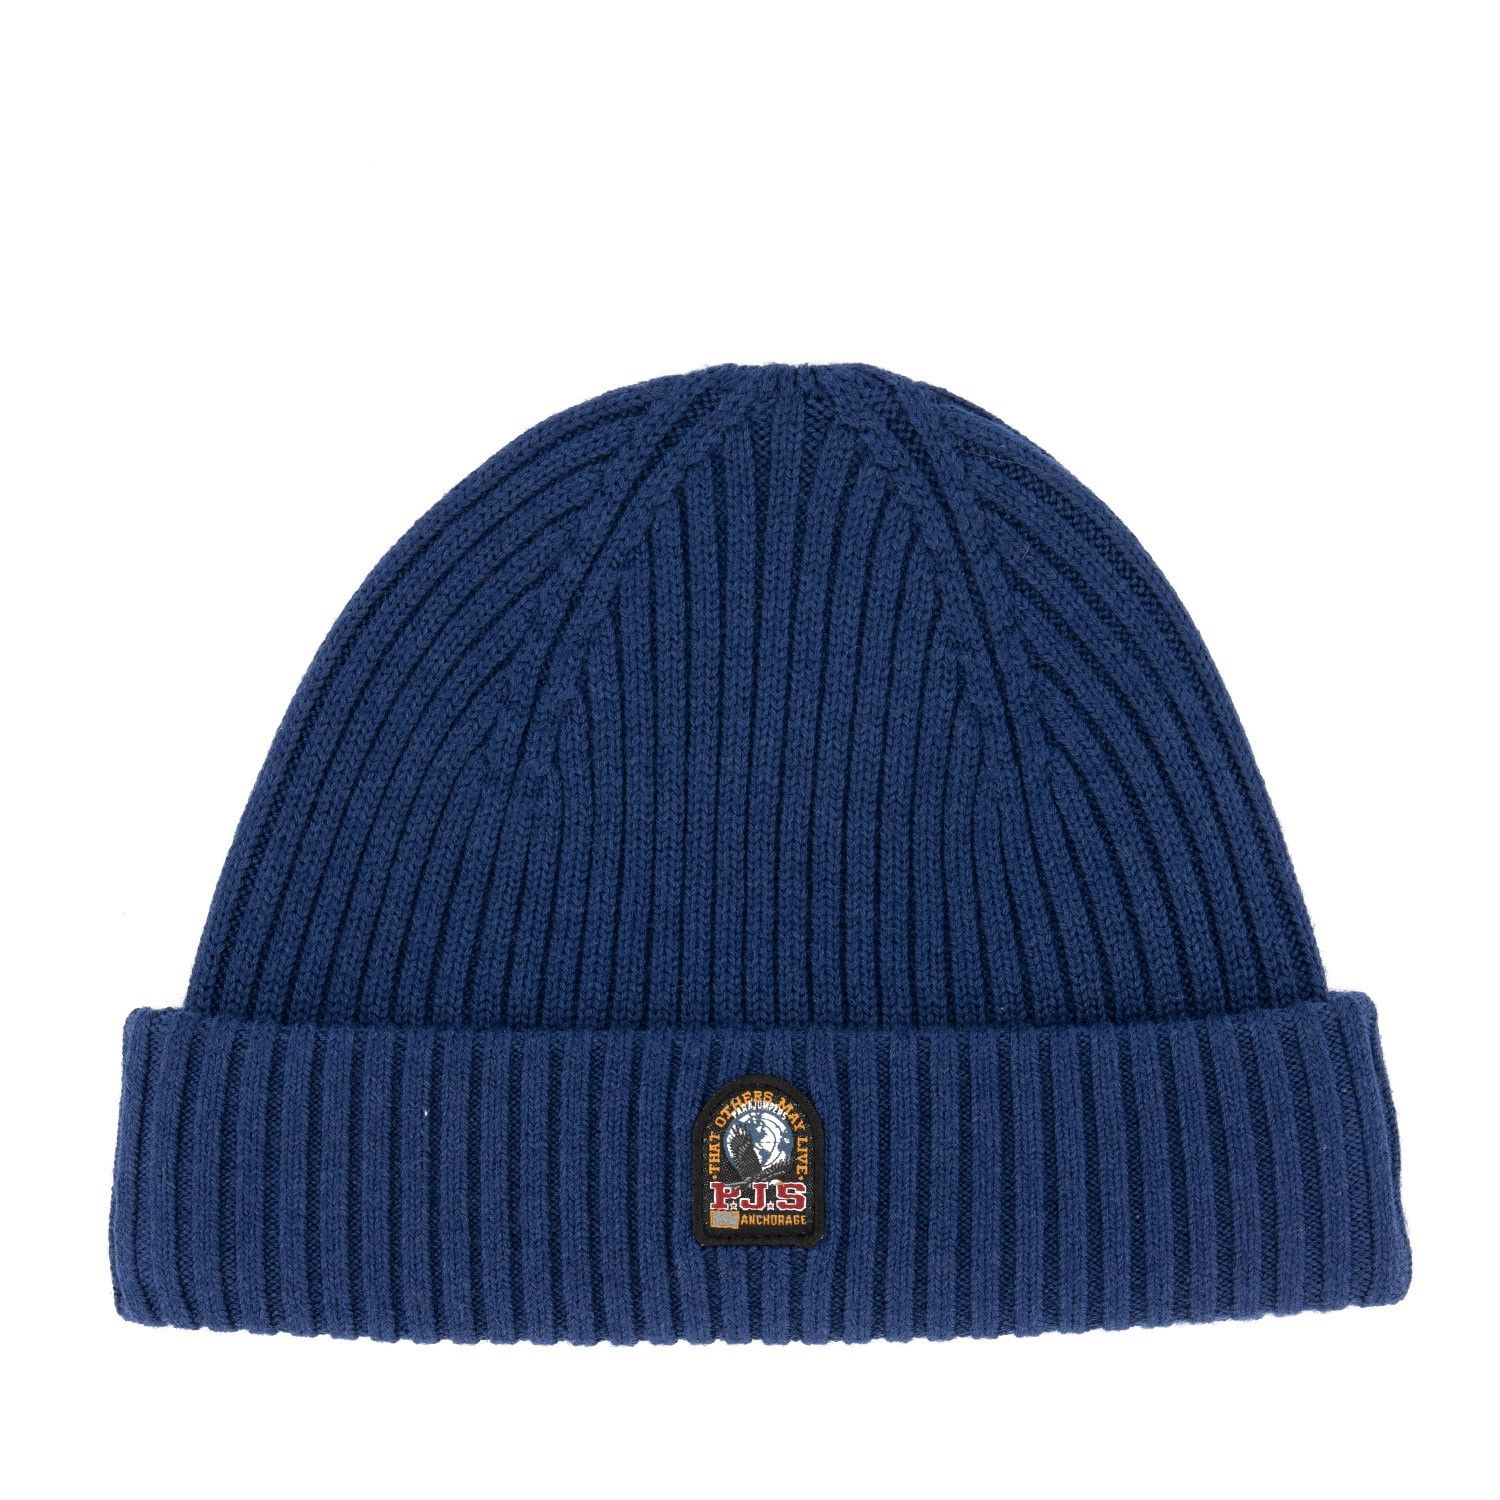 Picture of Parajumpers HA02 kids hat navy